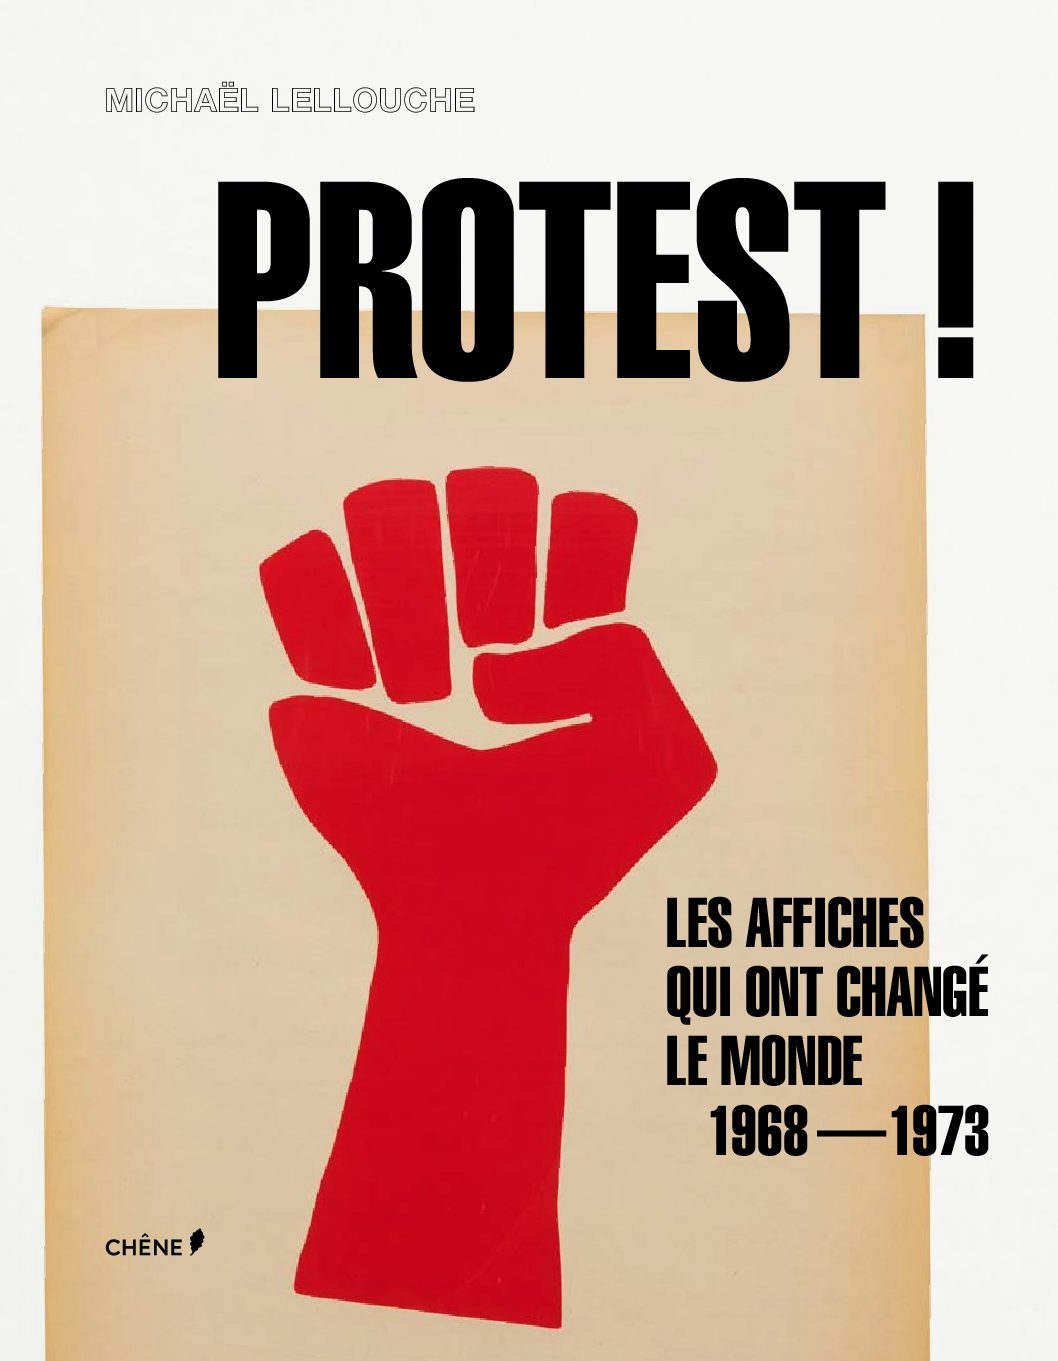 MIMA - protest-couverture 19-12-17 7